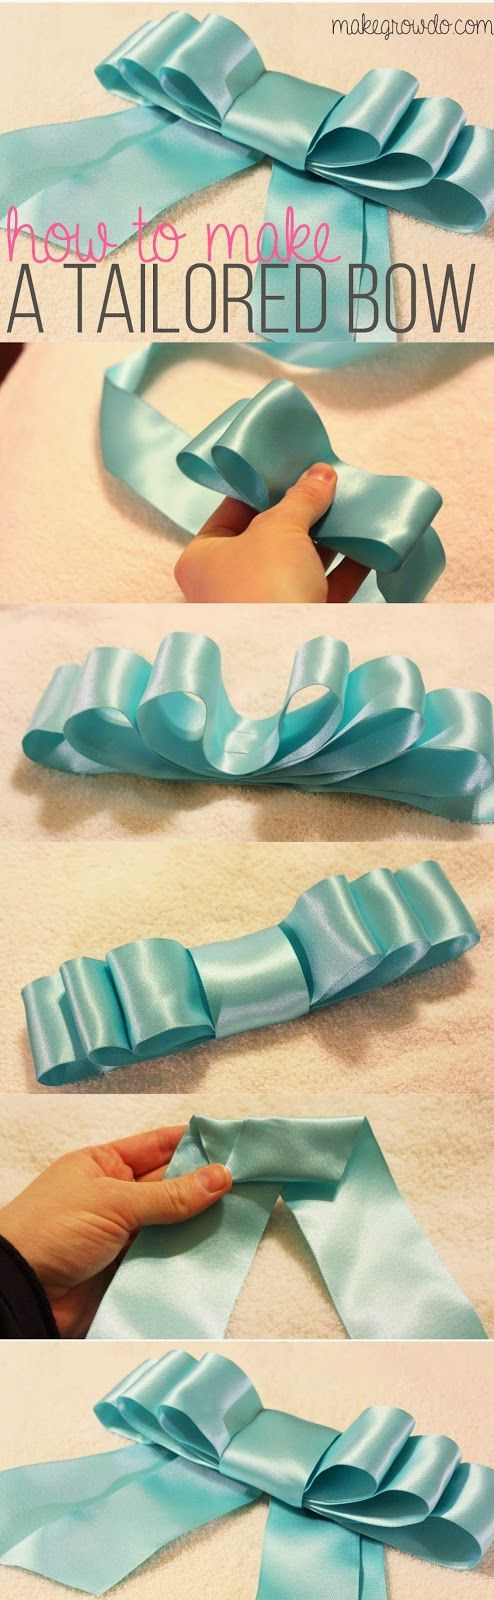 How to Make a Tailored Bow. Perfect for wreaths, packages, and hair barrettes! _ MakeGrowDo.com